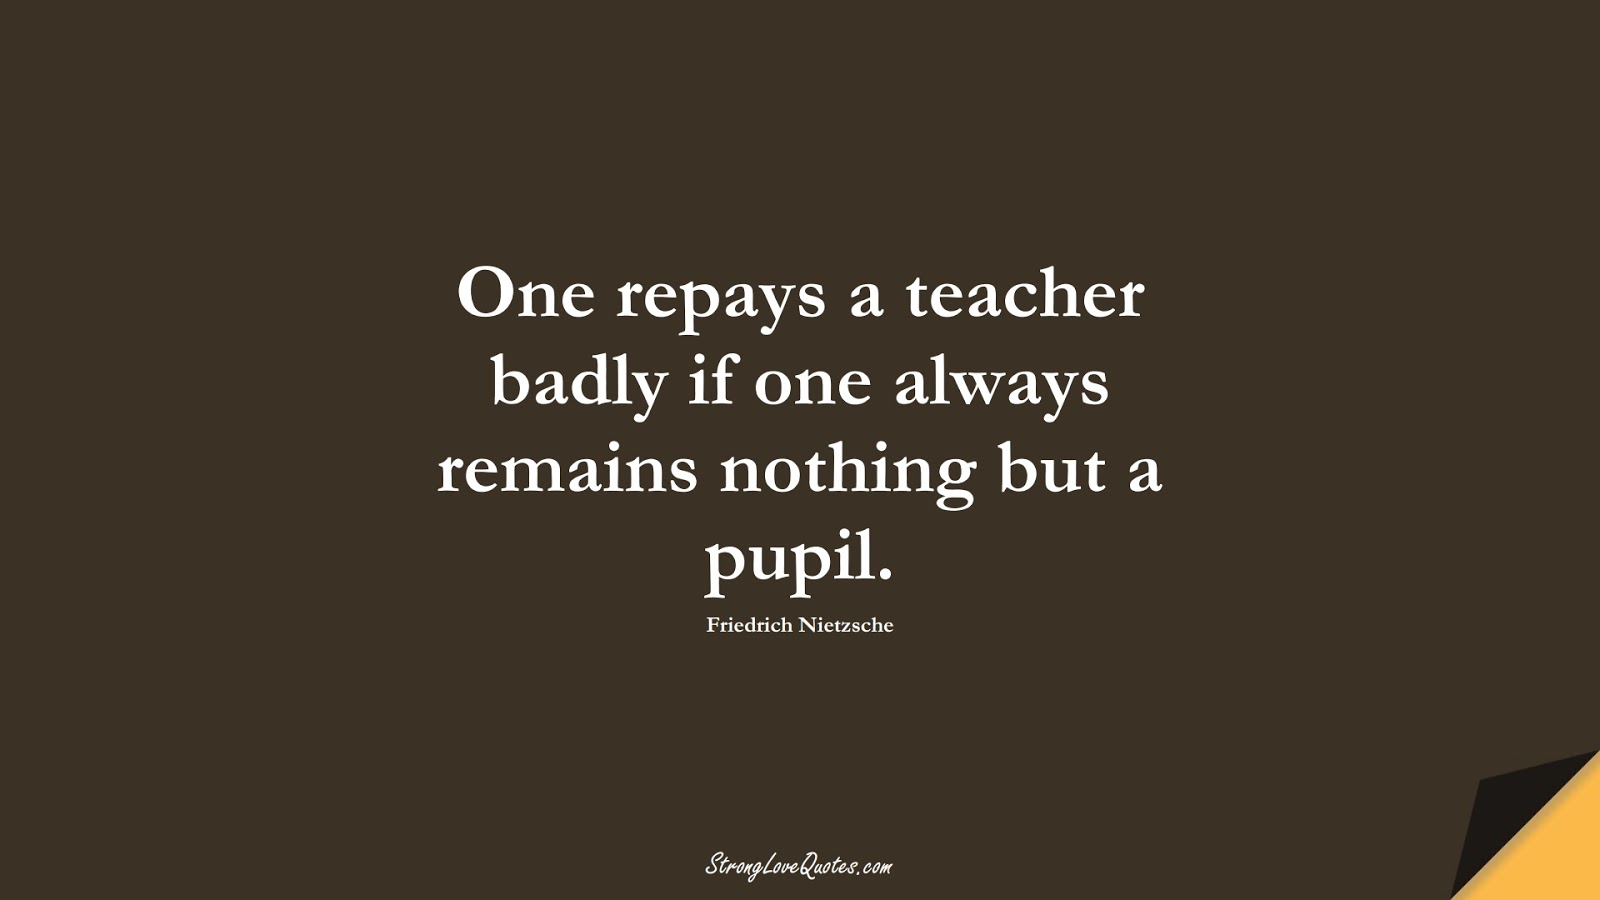 One repays a teacher badly if one always remains nothing but a pupil. (Friedrich Nietzsche);  #LearningQuotes